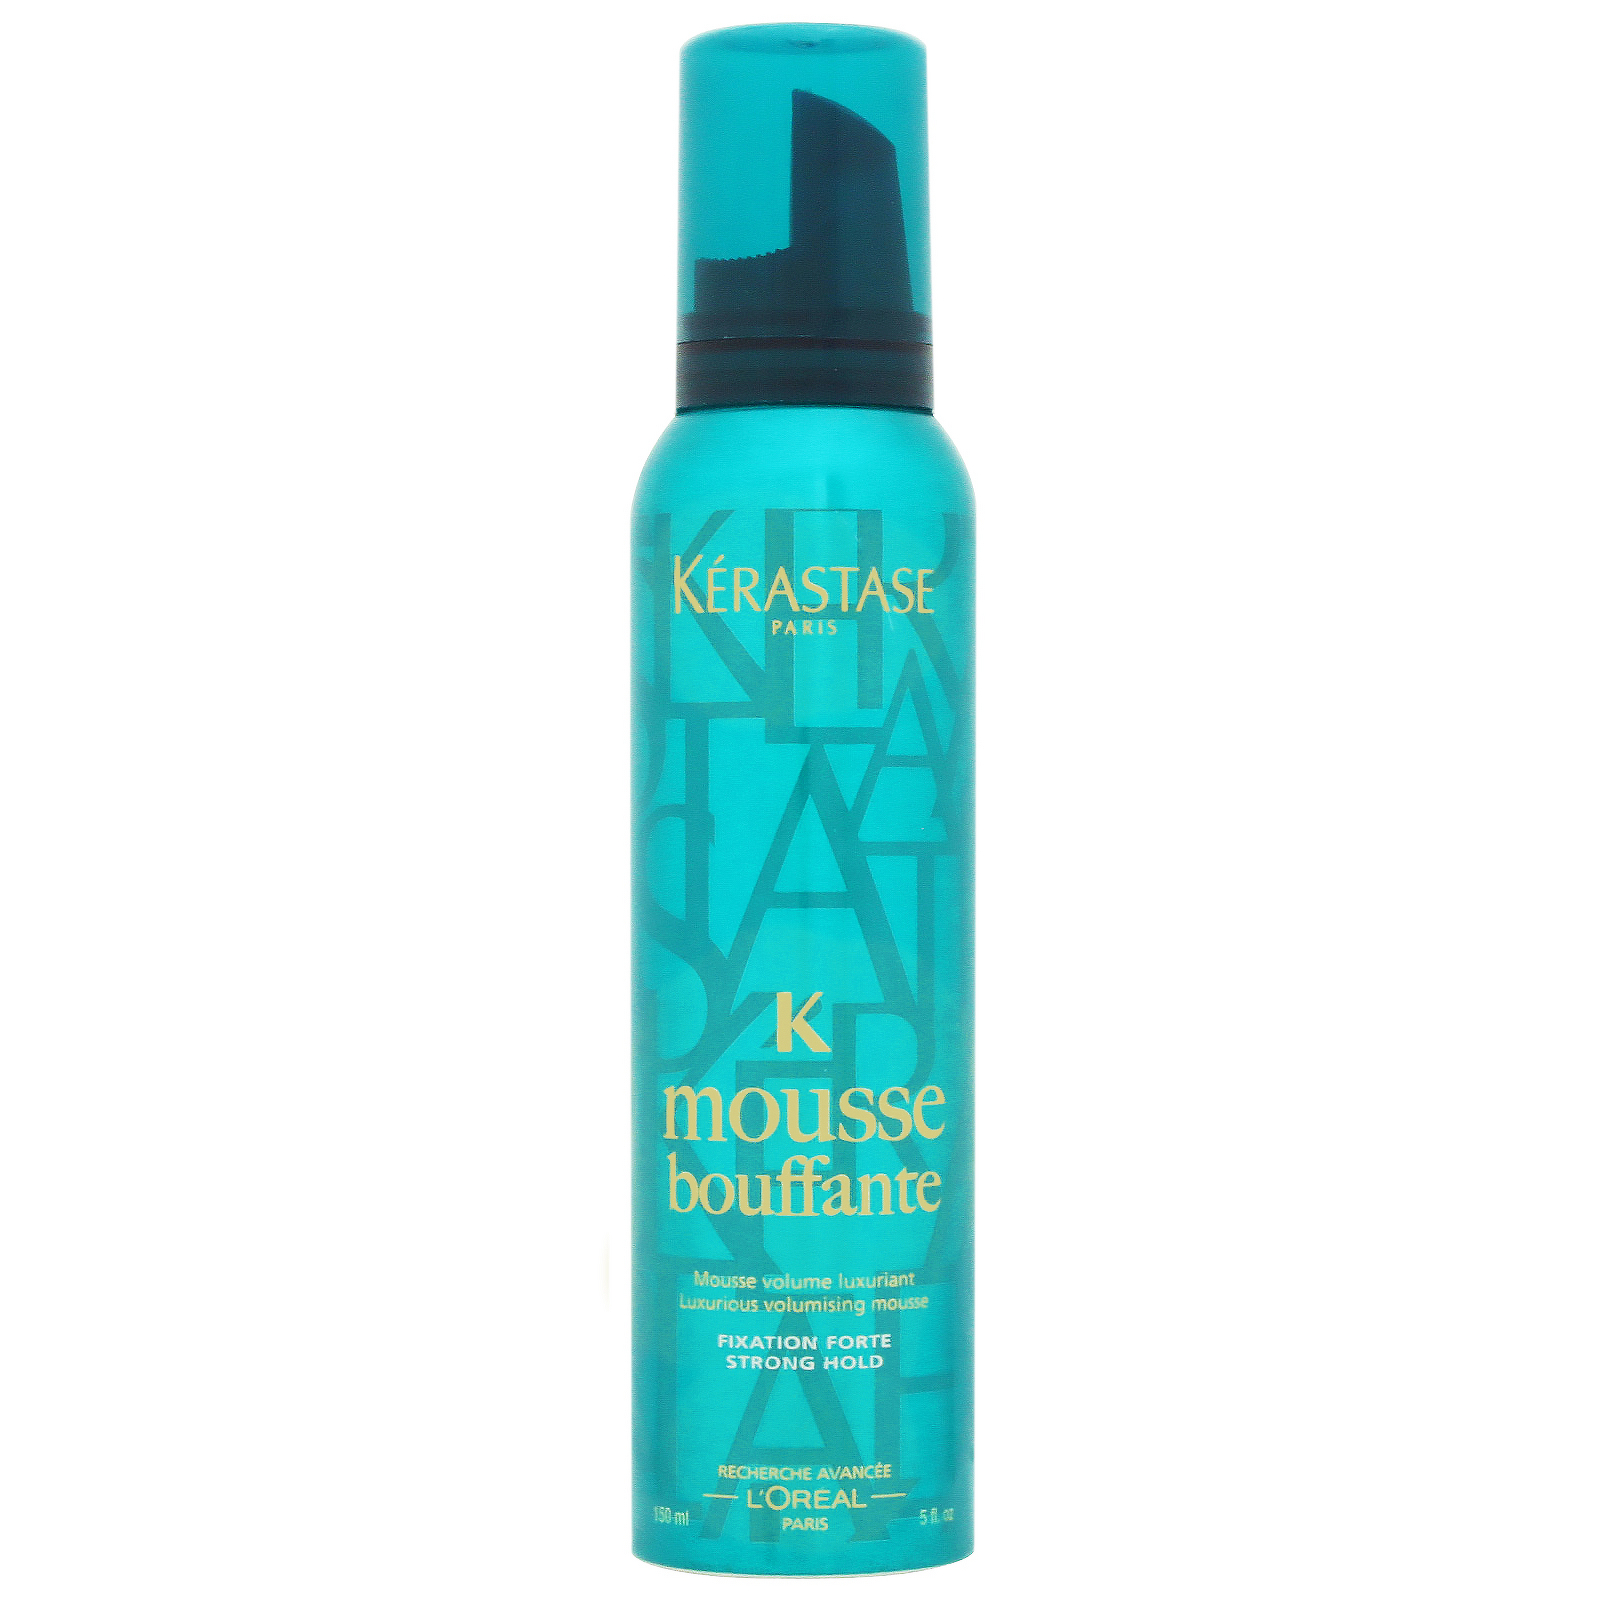 Kérastase Couture Styling Mousse Bouffante - Volumising Mousse 150ml